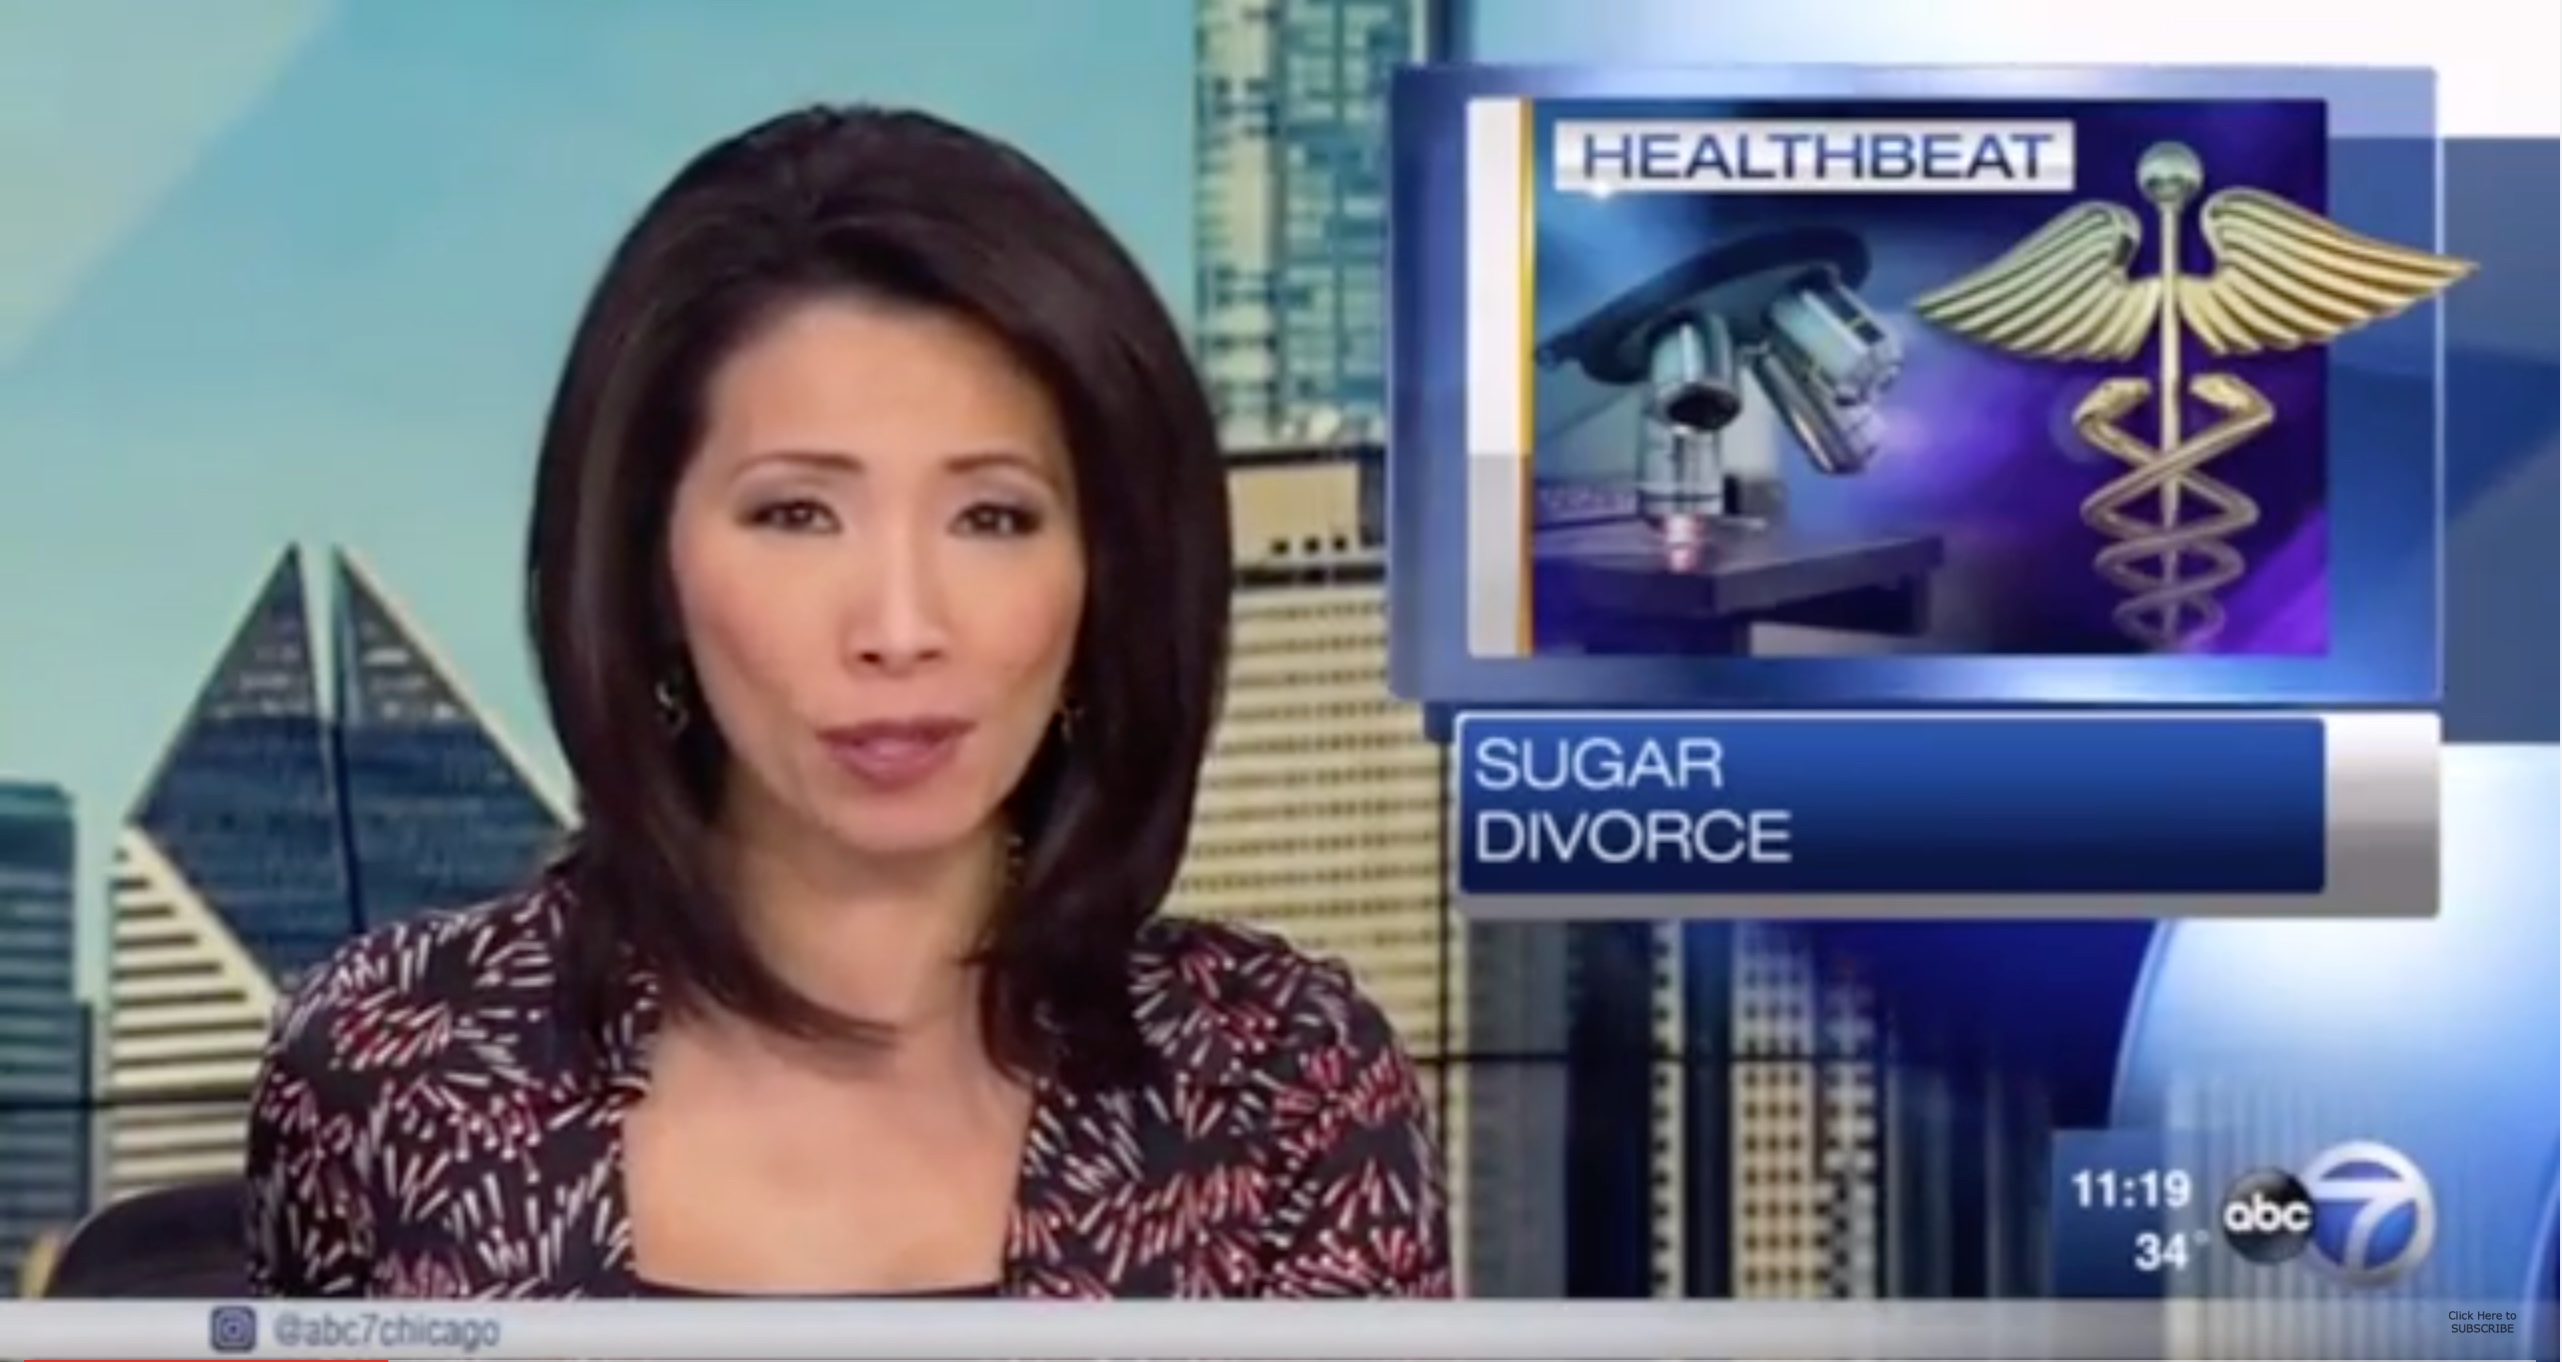 Sugar Divorce Miracle ABC TV News